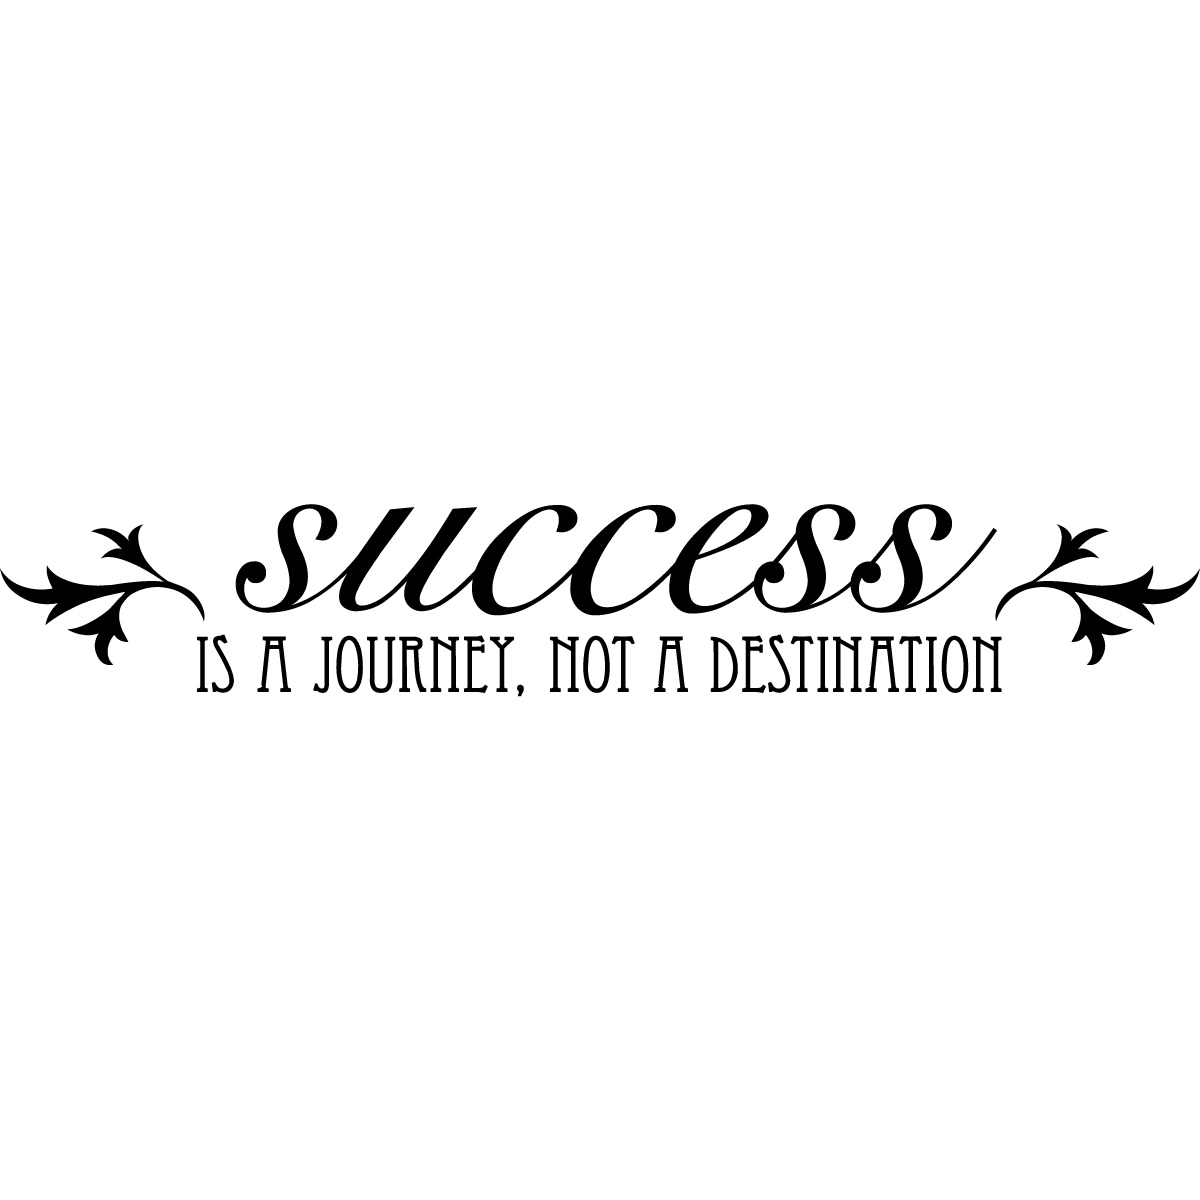 Quotes On Journey Of Success: Giant Leaps To Success: Success Is A JOURNEY